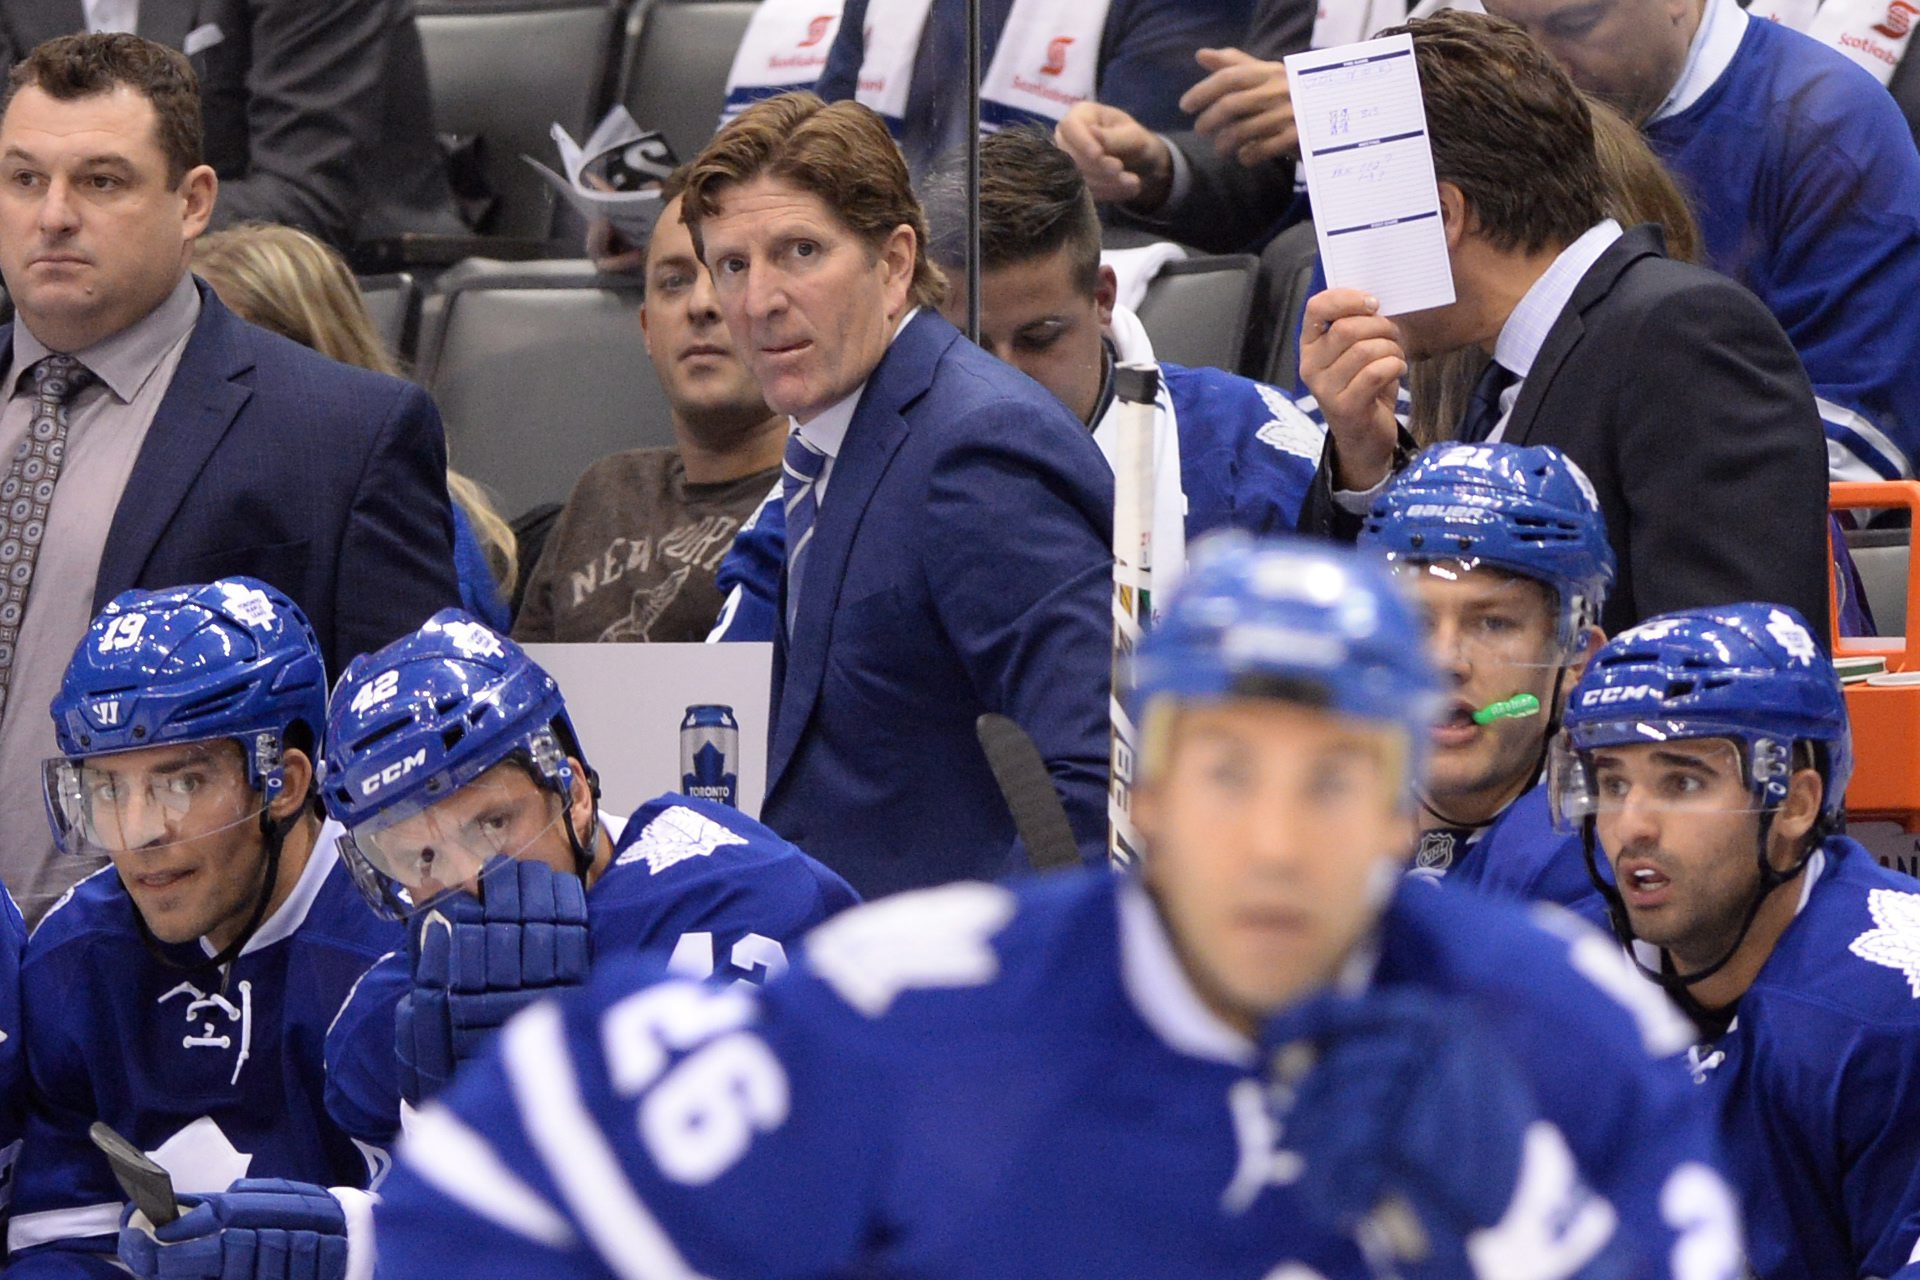 Toronto Maple Leafs head coach Mike Babcock stands behind the bench as his team plays the Montreal Canadiens during the second period of an NHL hockey game, Wednesday, Oct. 7, 2015 in Toronto.  (Frank Gunn/The Canadian Press via AP) MANDATORY CREDIT